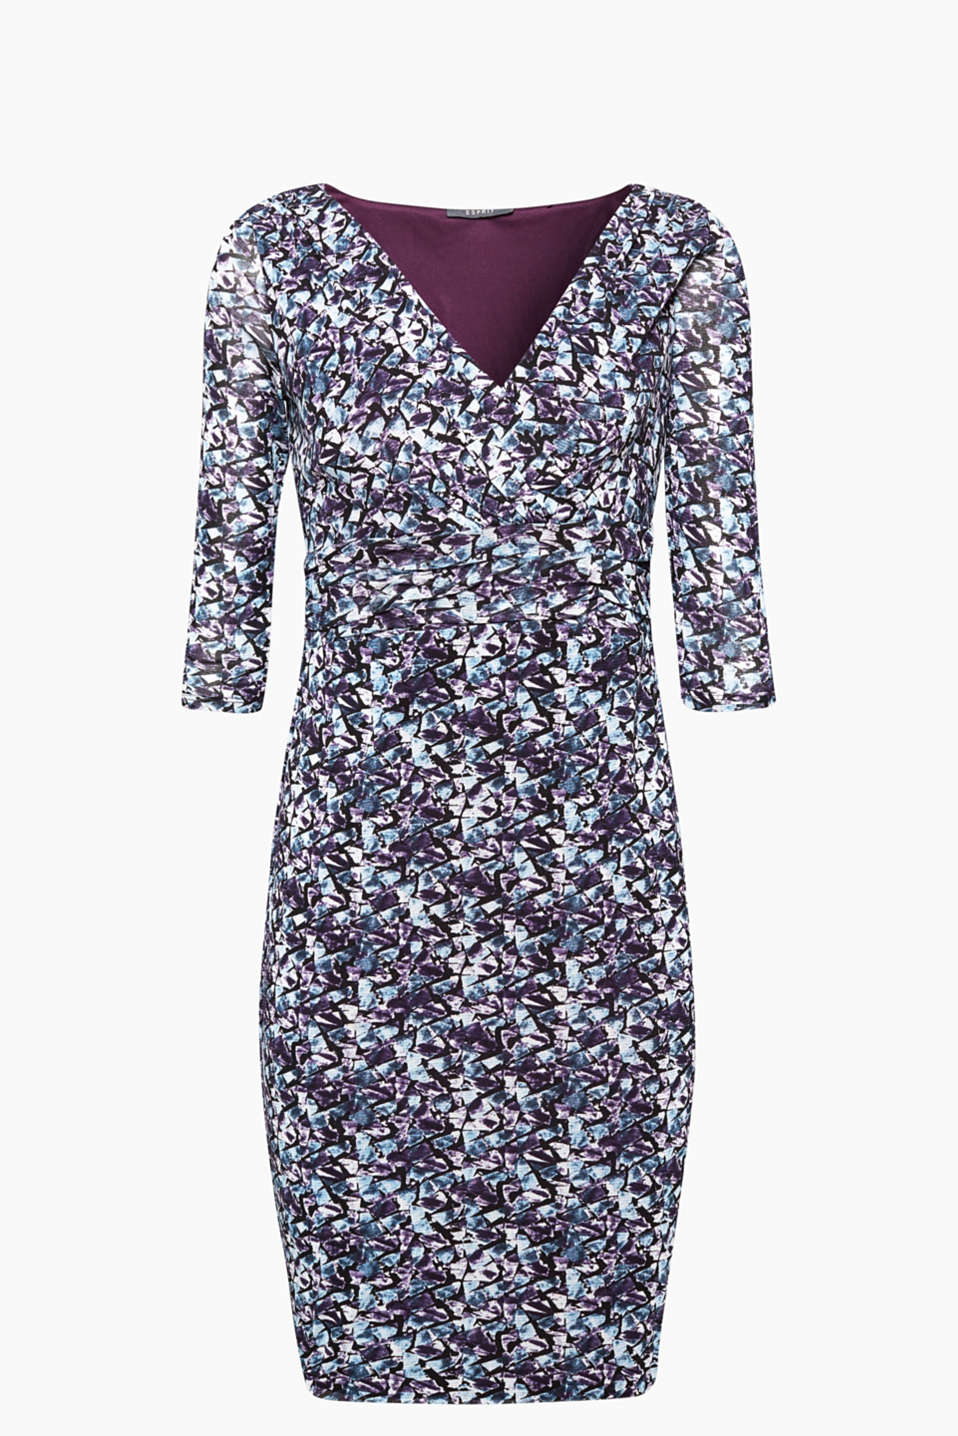 This charming printed mesh dress is perfect if you want to combine comfort and charisma!